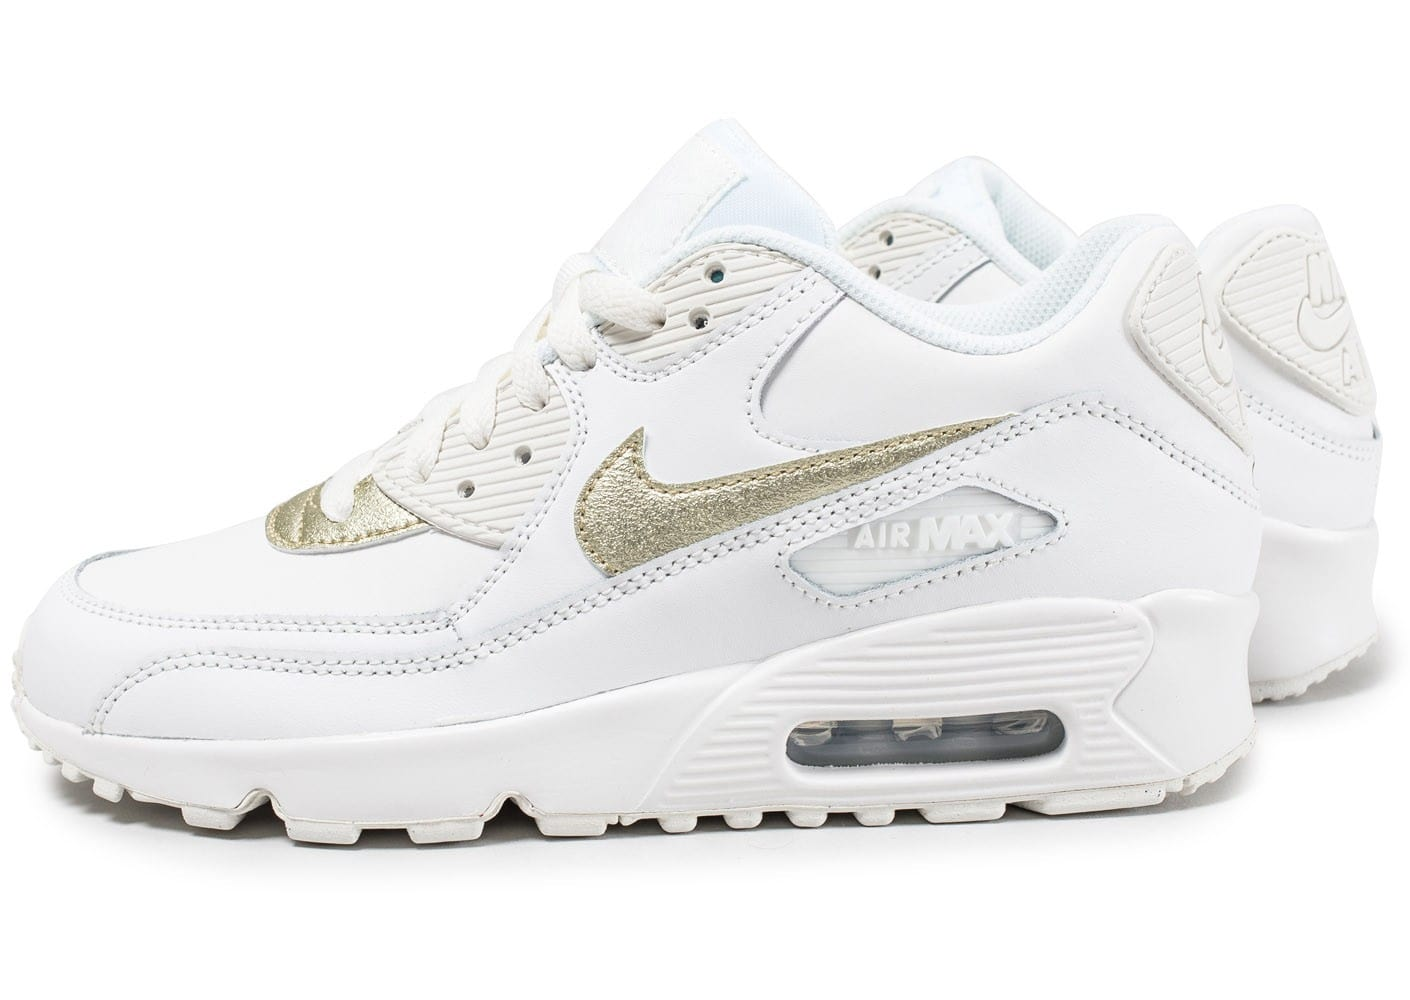 Nike Air Max 90 Leather Junior blanche et or Chaussures Baskets